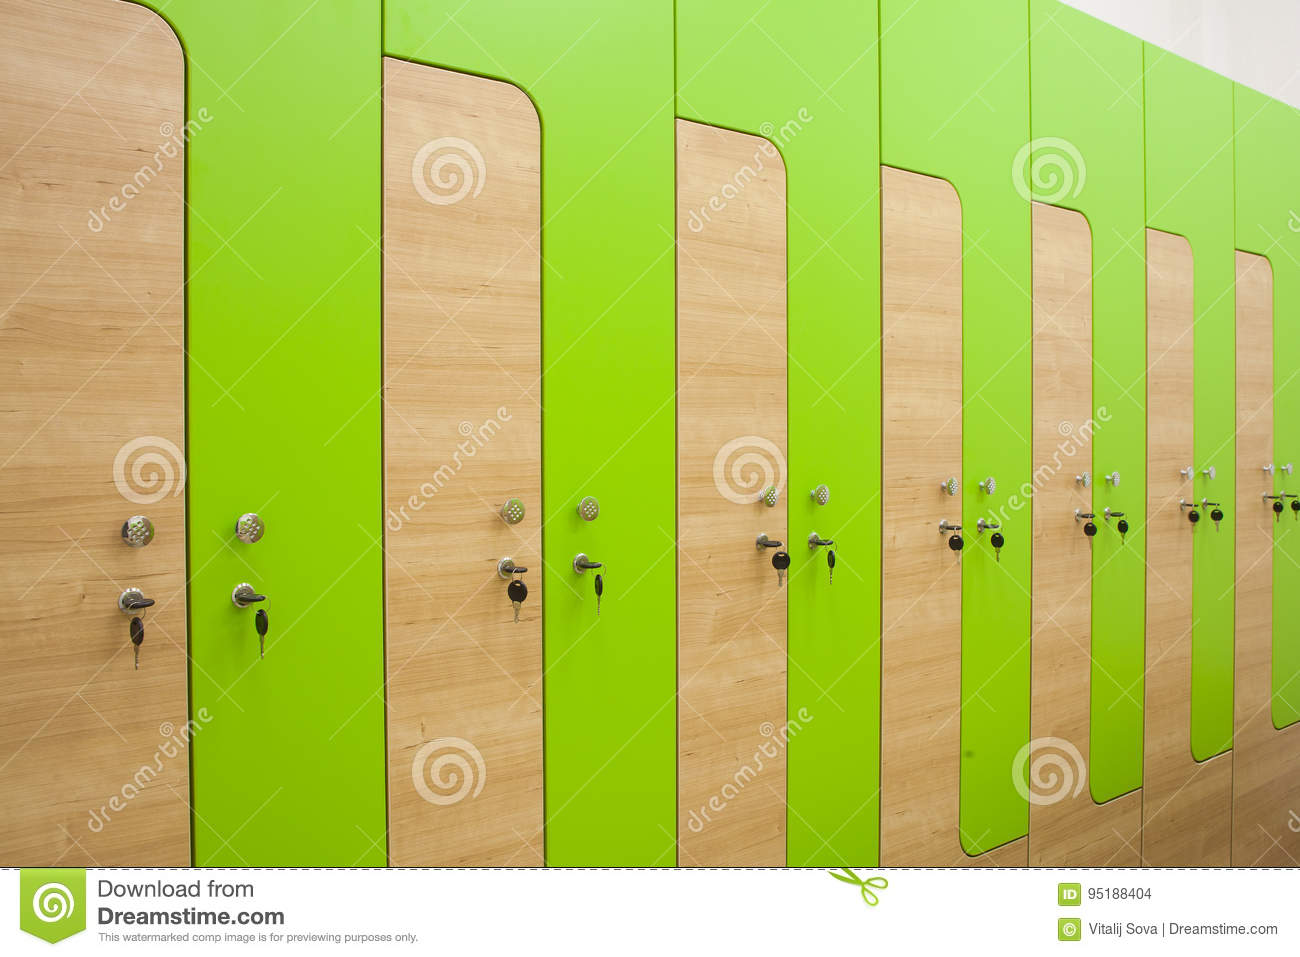 Swell Wooden Sports Wardrobe Stock Photo Image Of Bench Cabinets Machost Co Dining Chair Design Ideas Machostcouk